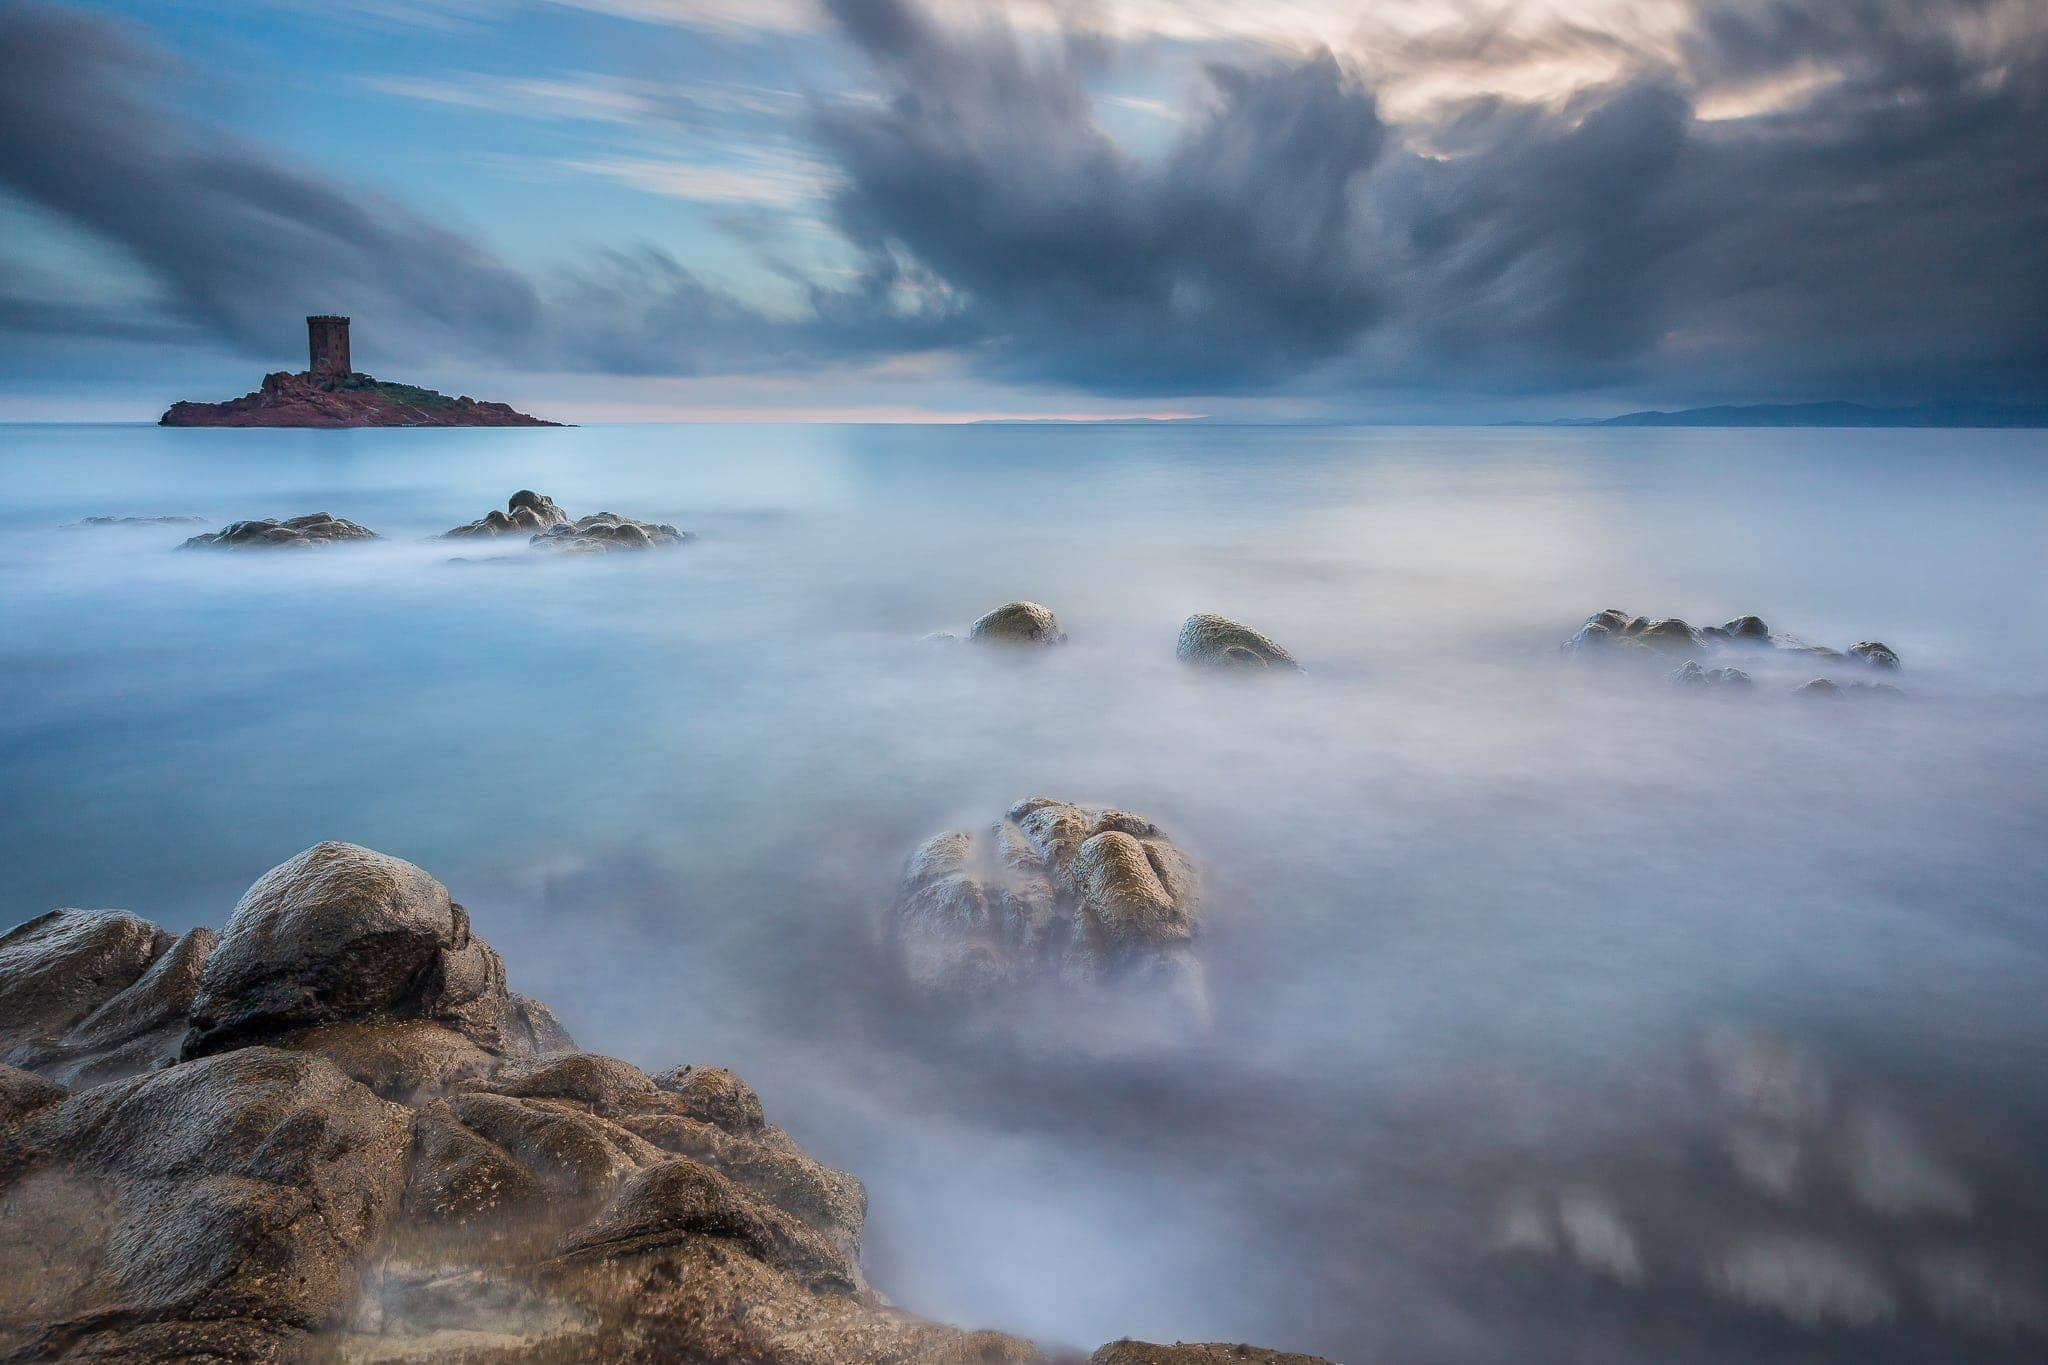 Francesco Gola Seascape Landscape Photography Long Exposure Clouds Dramont Storm France Cote Azur Dramont